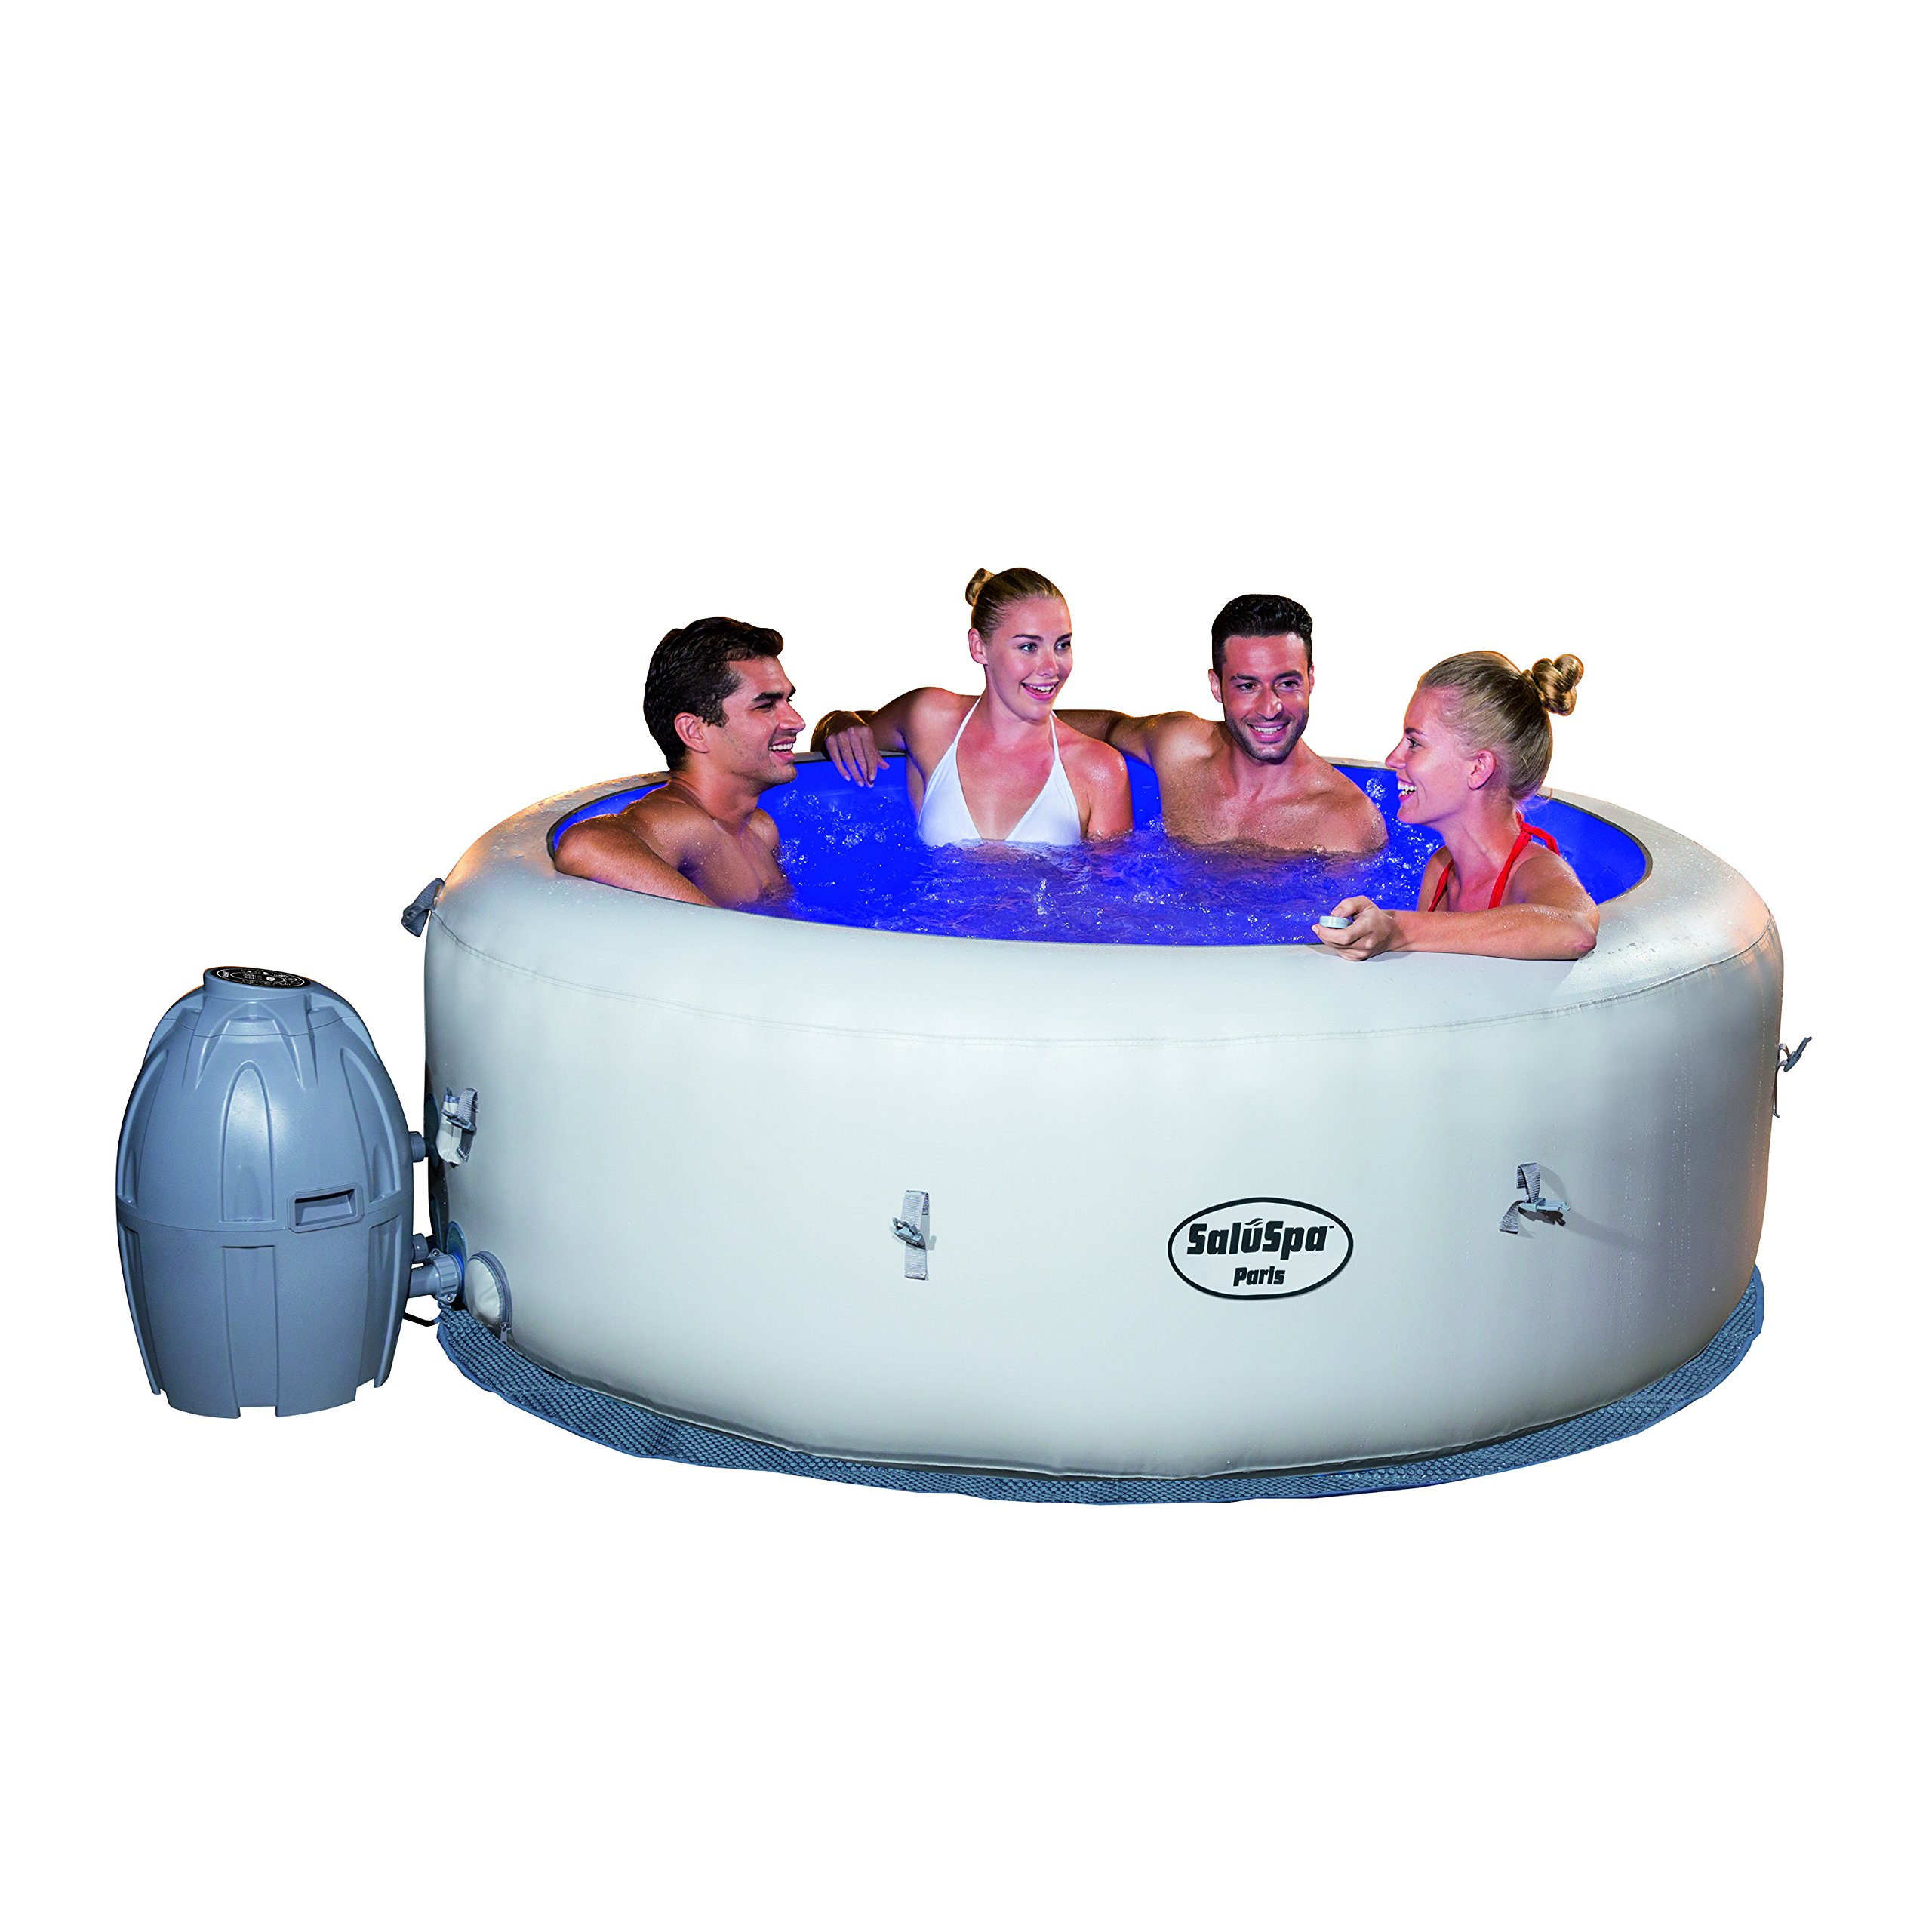 SaluSpa Paris AirJet Inflatable Hot Tub w/ LED Light Show by Bestway